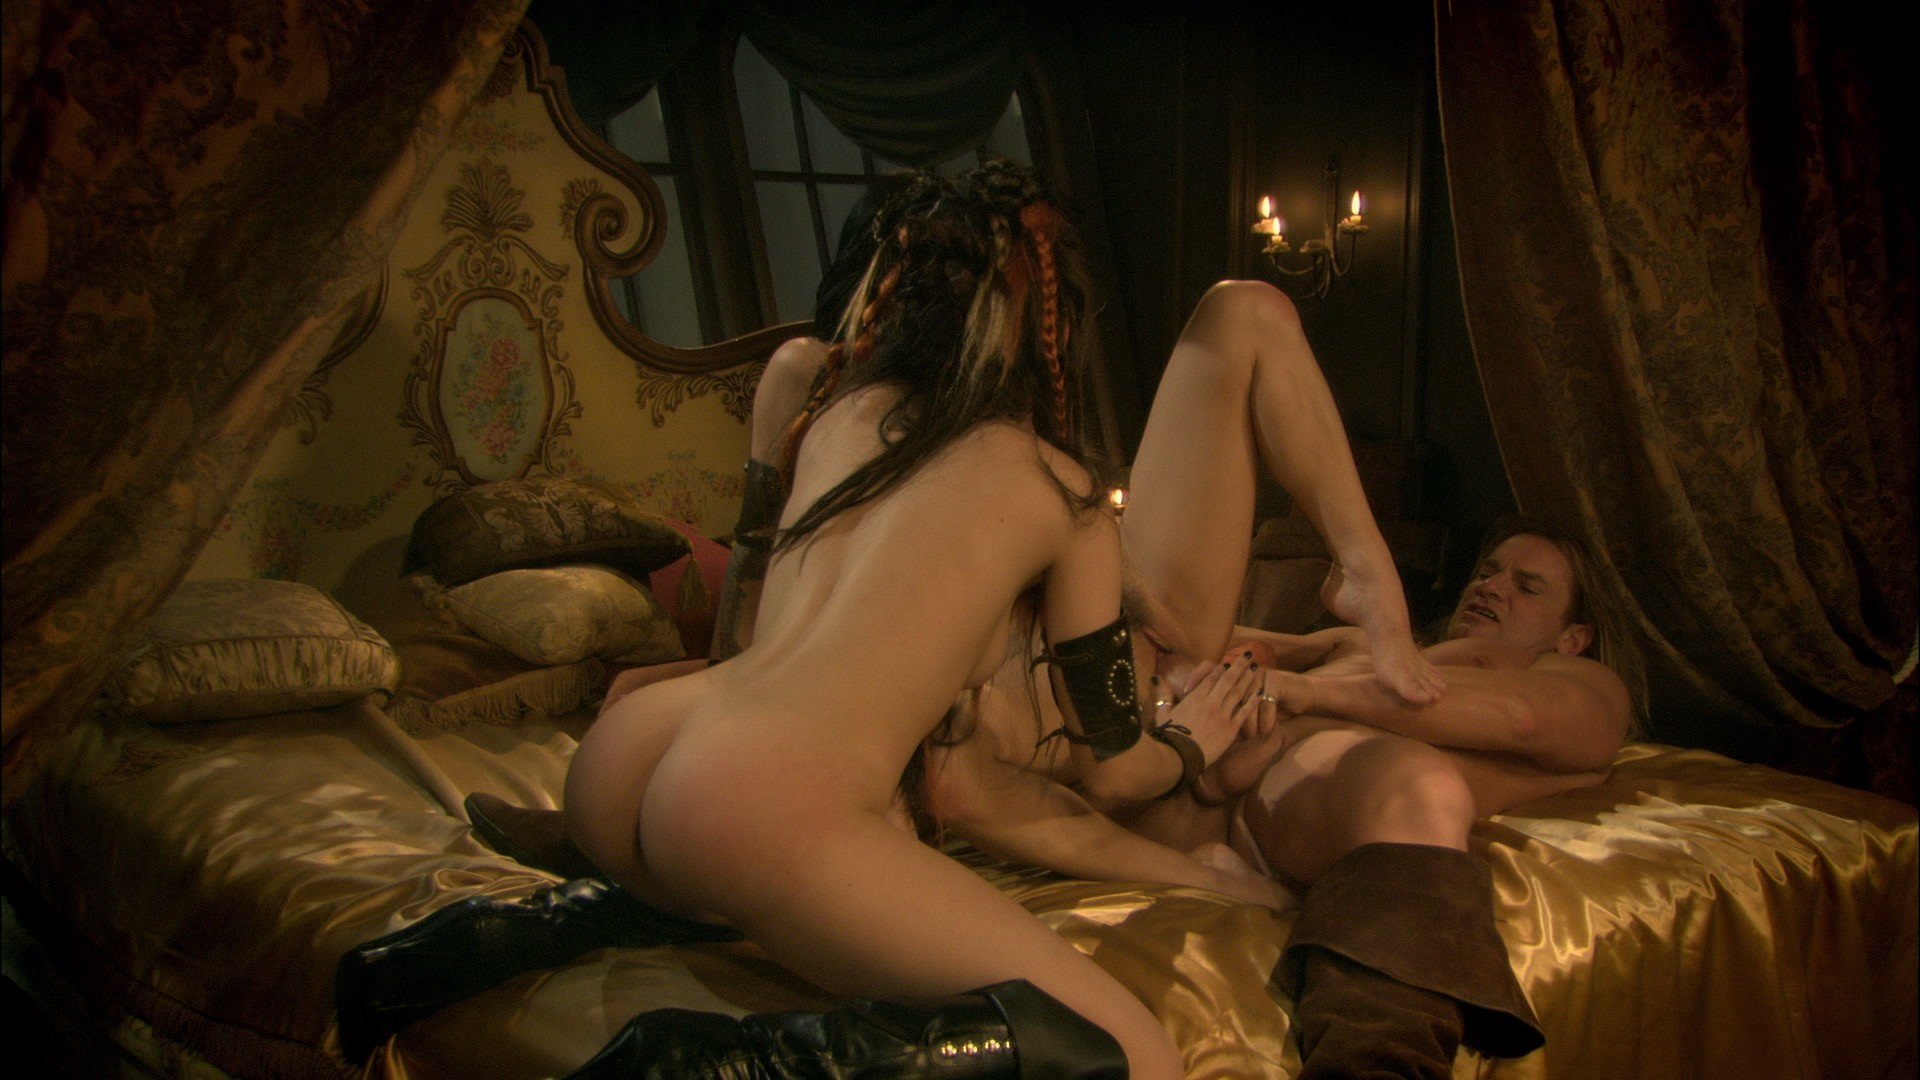 Pirates 2 Streaming Video On Demand  Adult Empire-9356